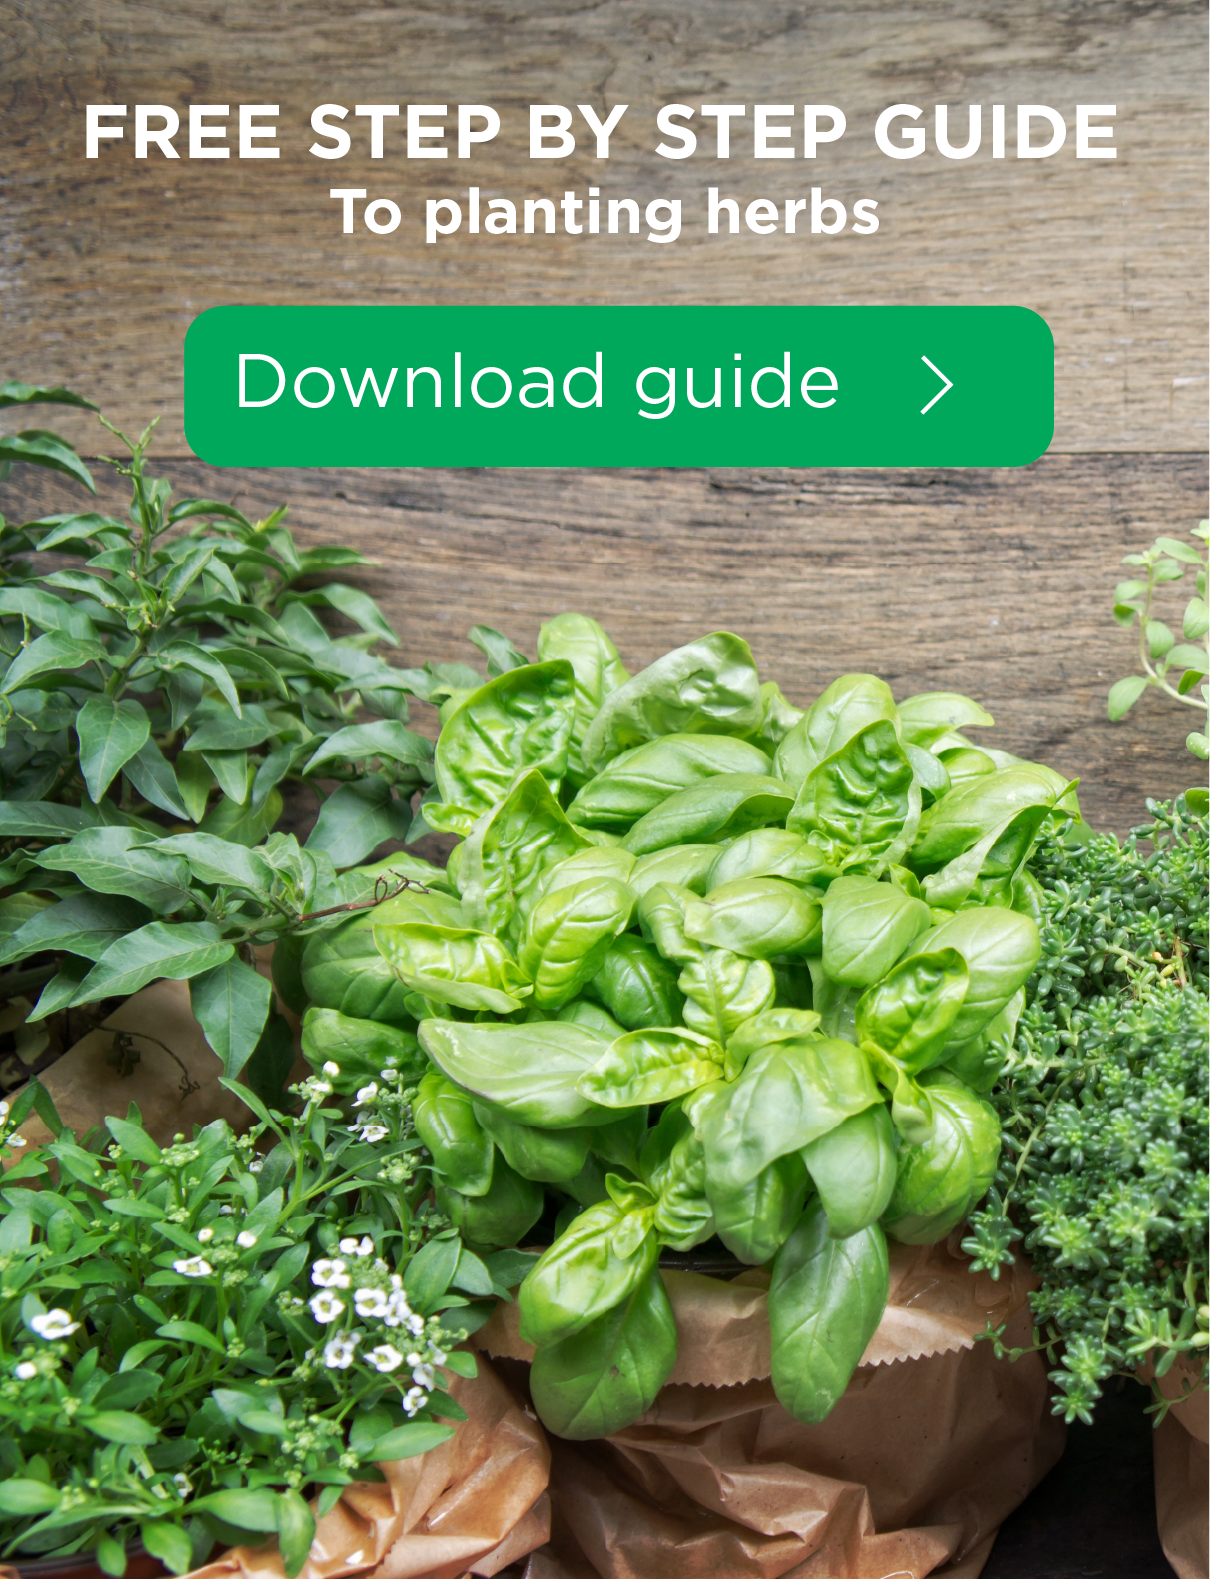 Guide to planting herbs